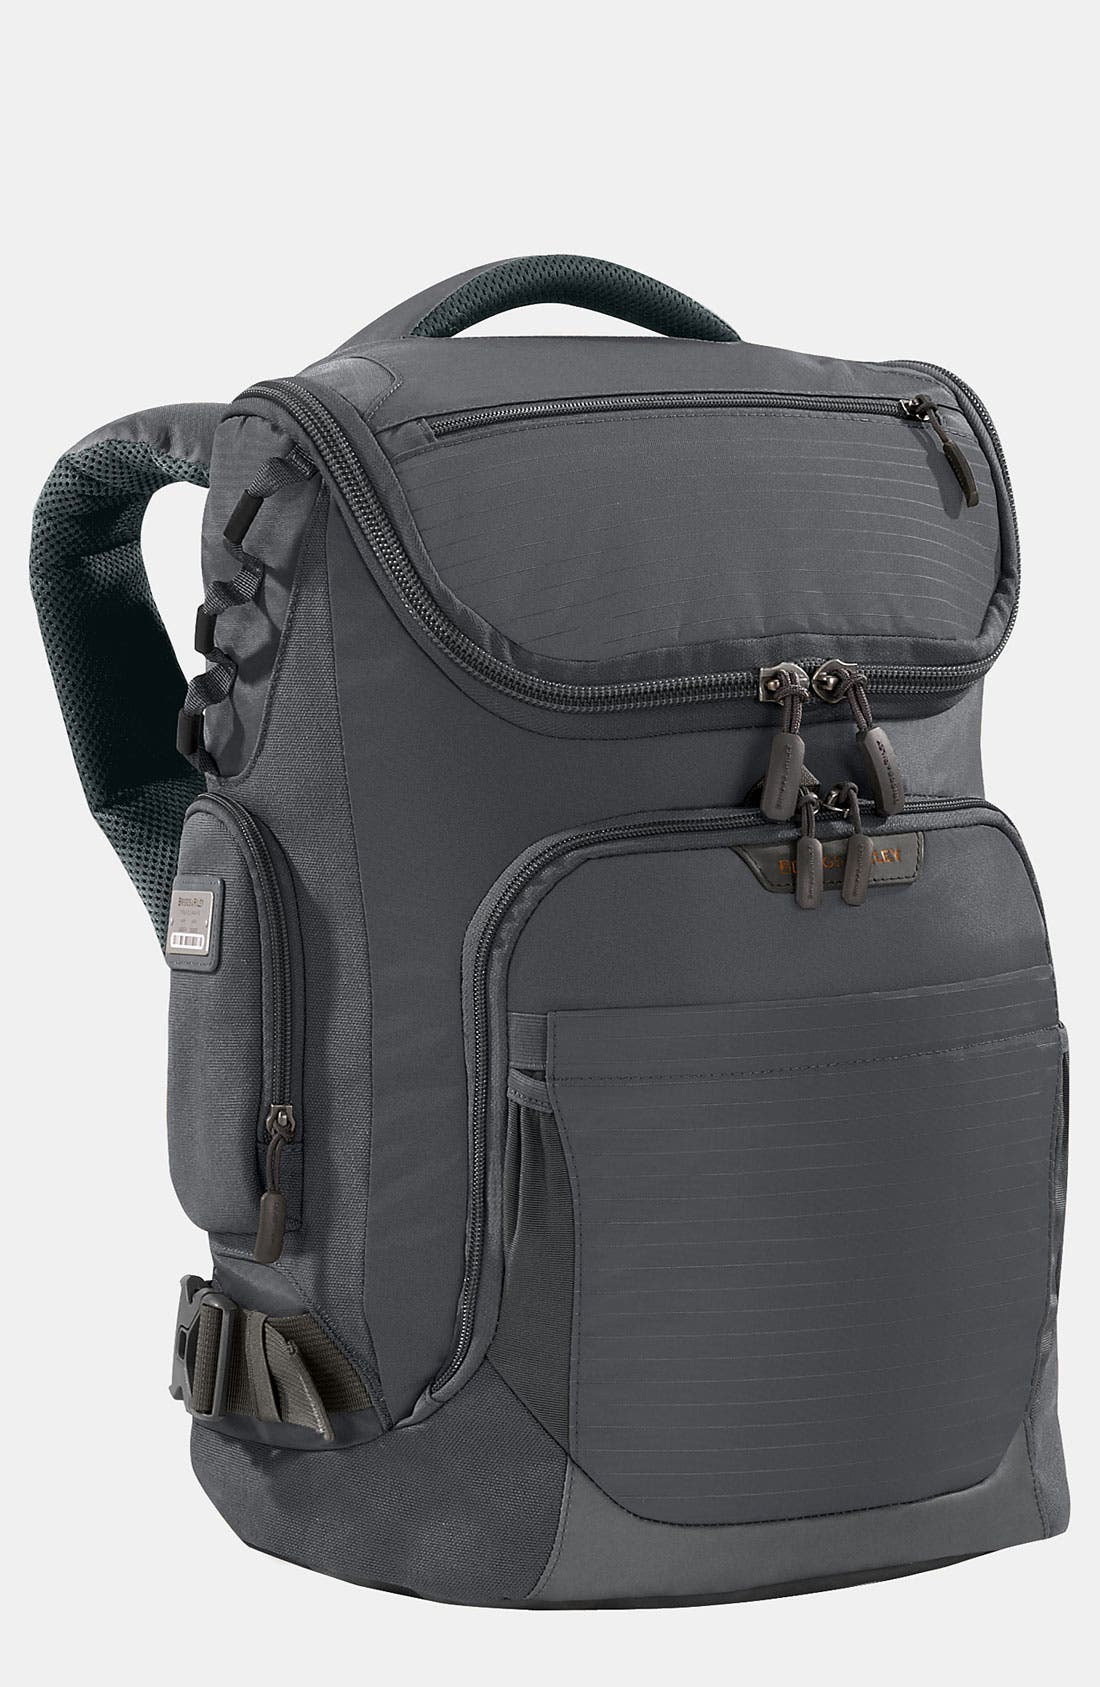 Main Image - Briggs & Riley 'Excursion' Backpack